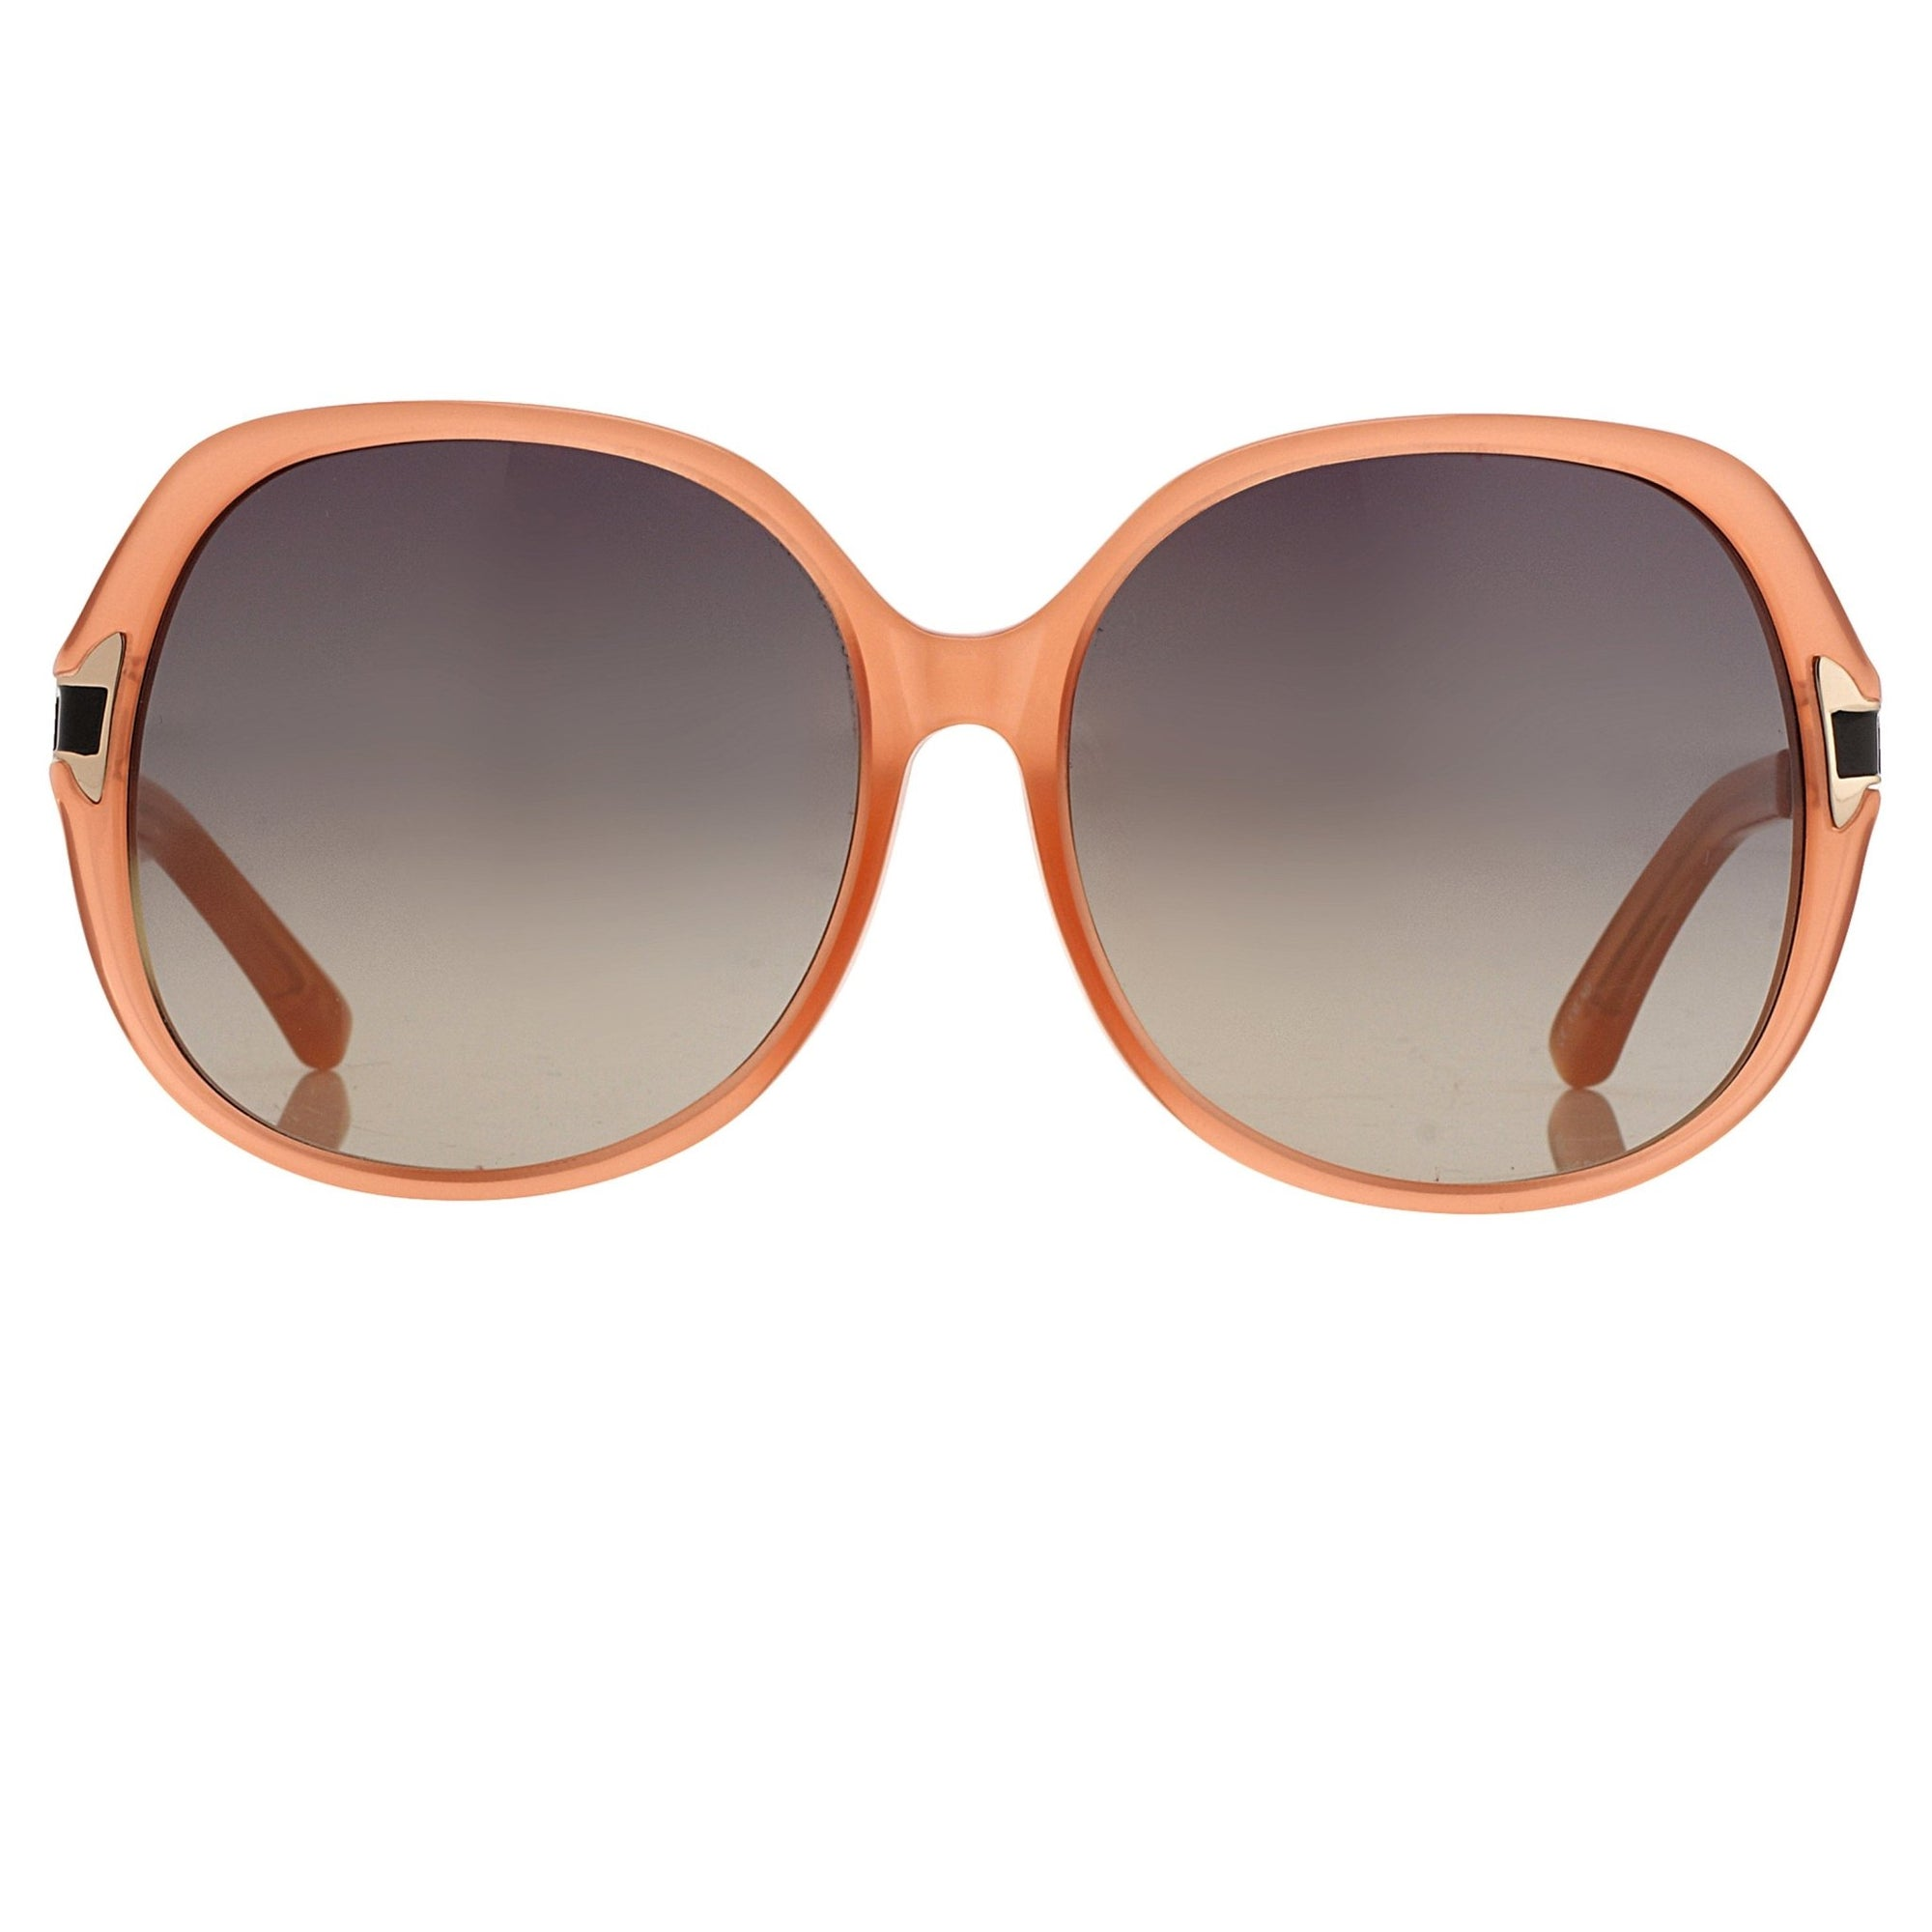 Oscar De La Renta Sunglasses Oversized Frame Orange Enamel Arms and Grey Lenses - ODLR22C5SUN - Watches & Crystals